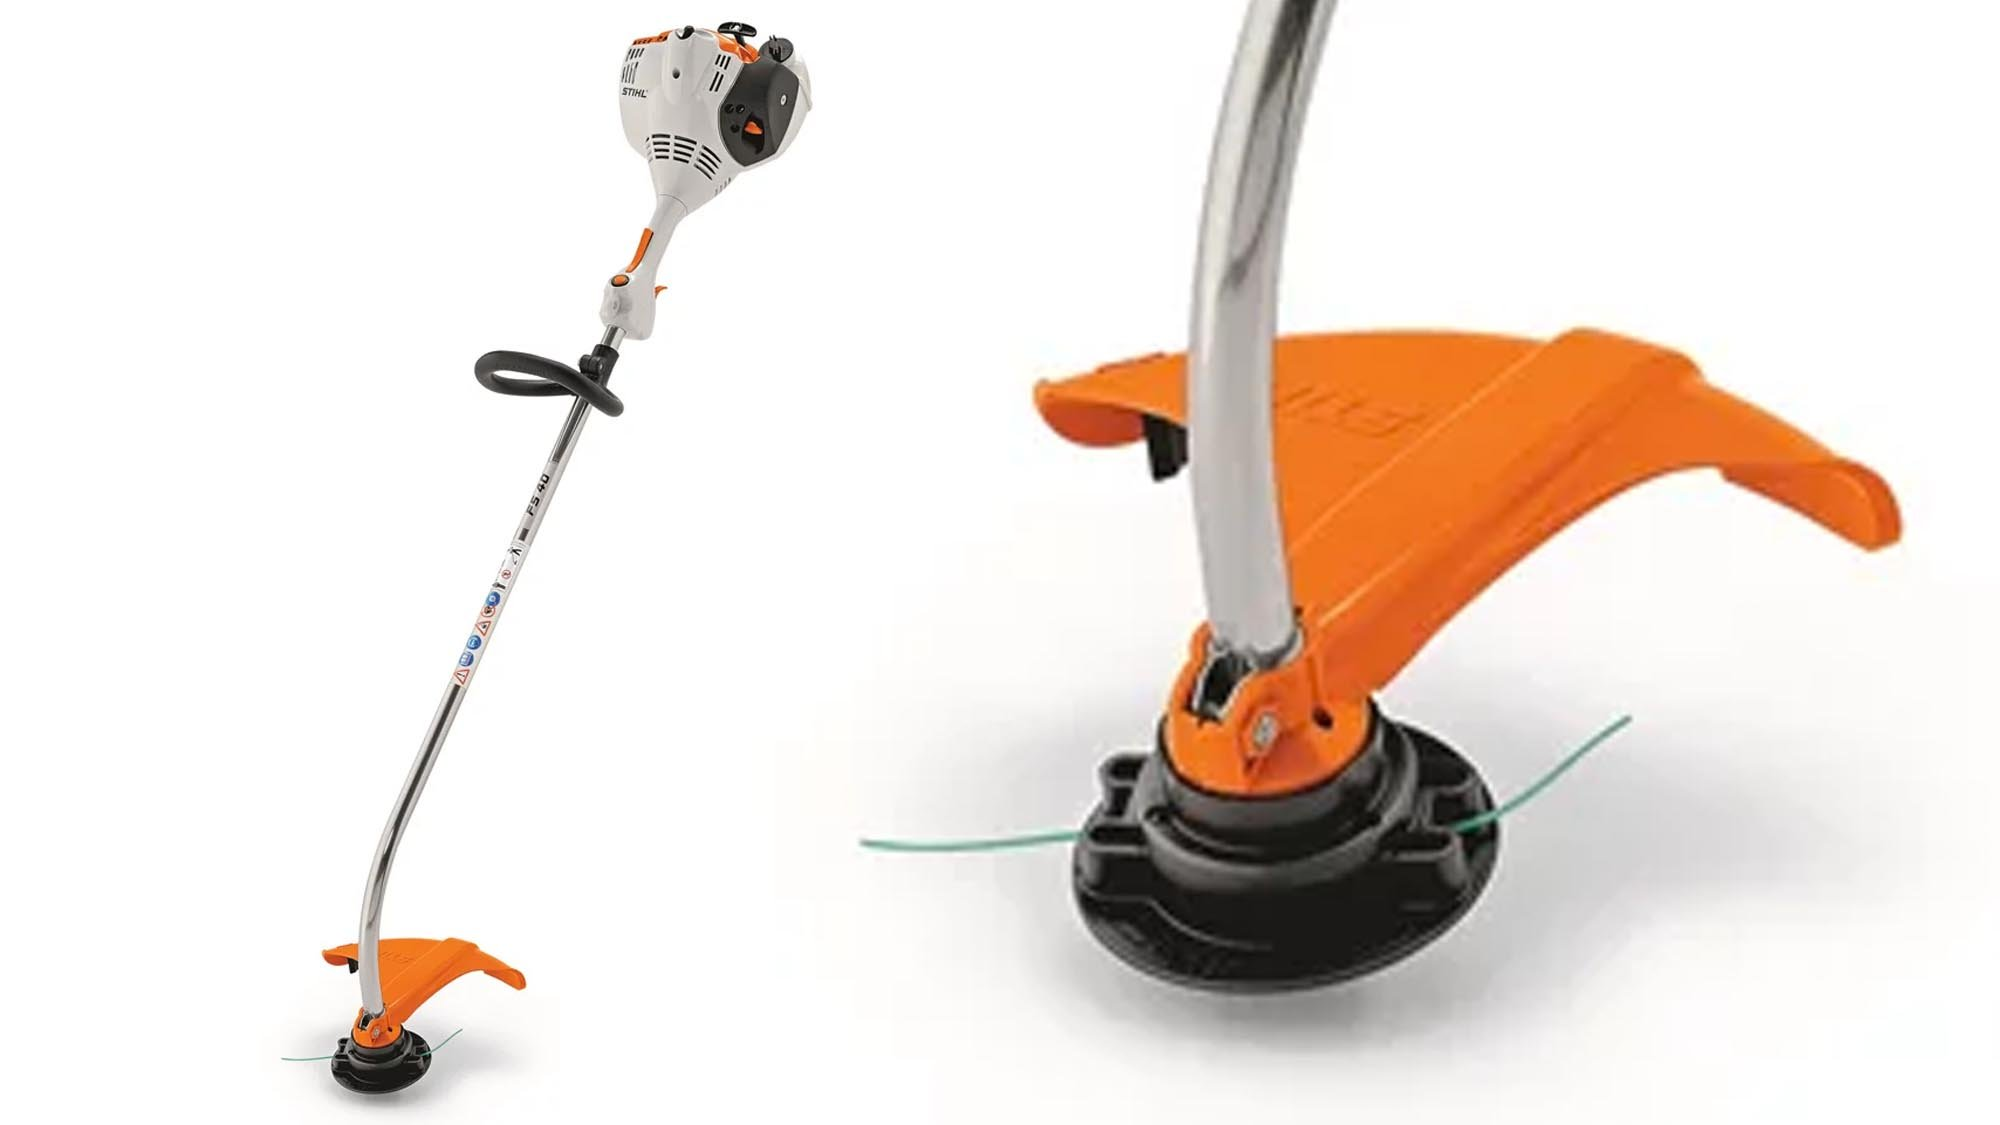 Best grass trimmer the best electric cordless and petrol trimmers some gardens need a petrol trimmer and the stihl fs40 is a good affordable example from one of the biggest names in the business keyboard keysfo